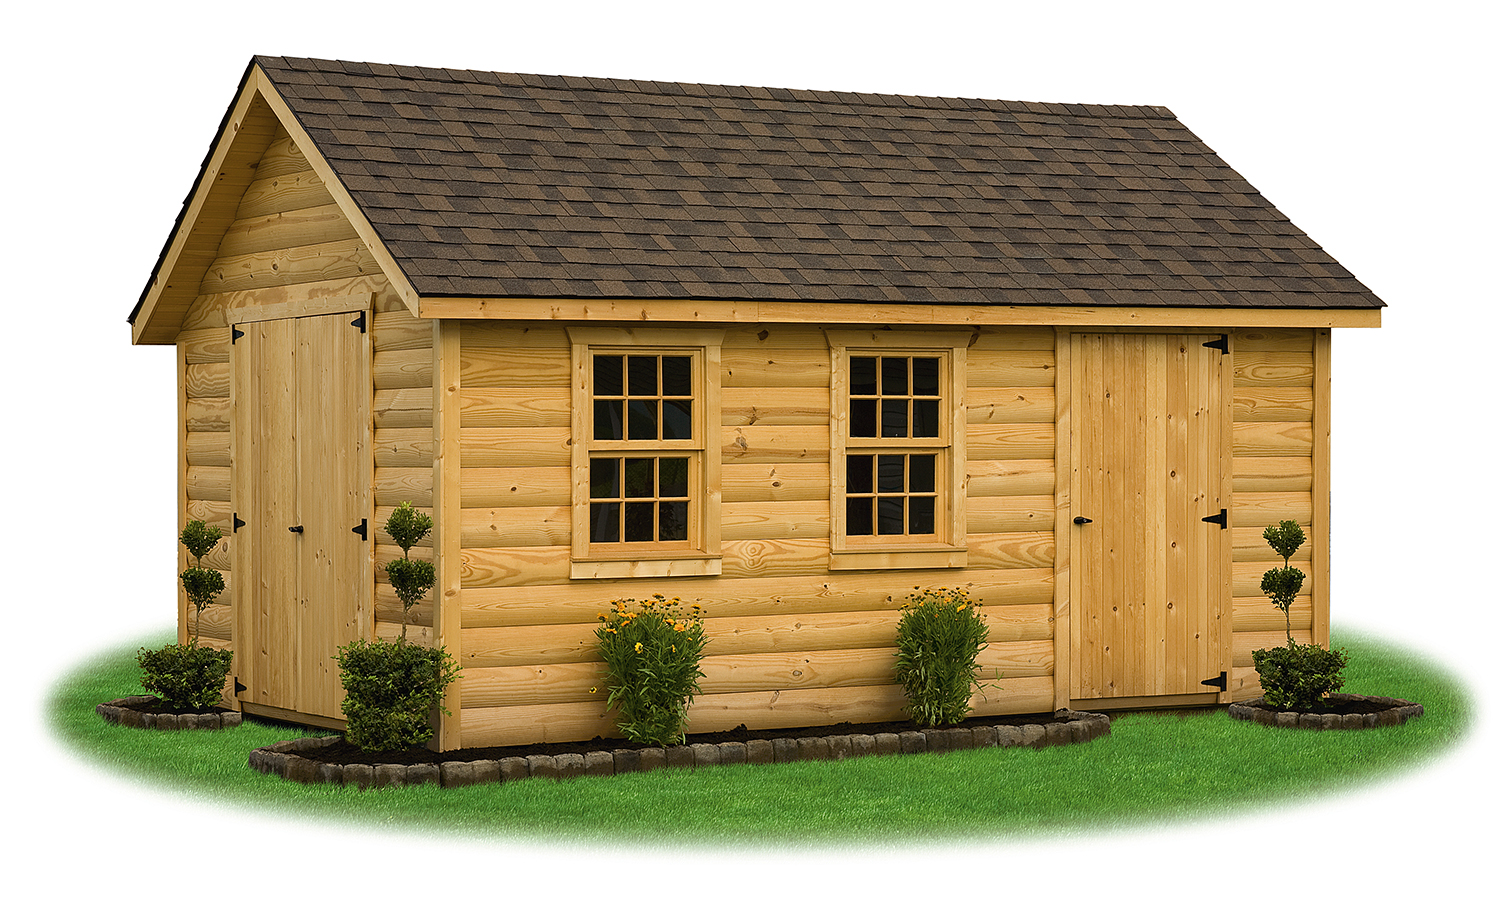 10 x 16 Log sided Cape Cod Storage Shed  sc 1 st  Pine Creek Structures & The Cape Cod Series | Pine Creek Structures